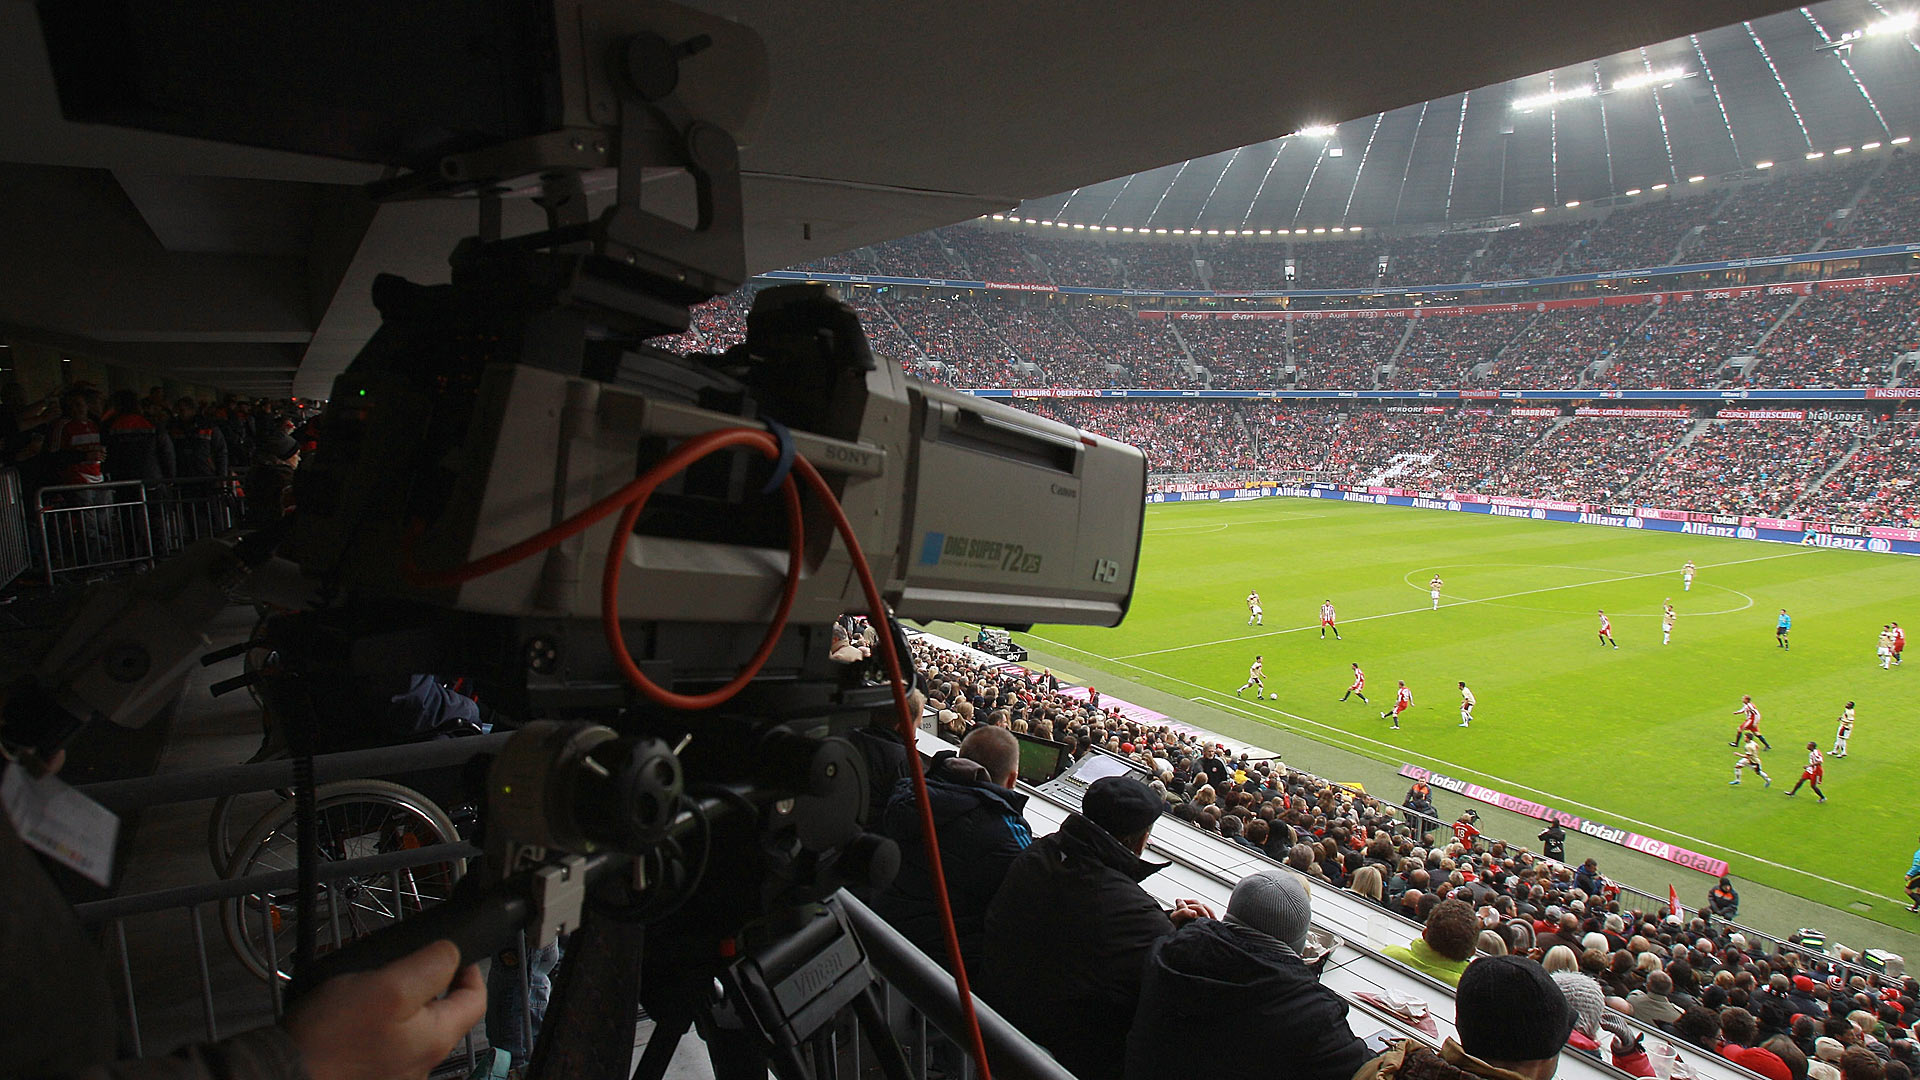 TV Kamera Camera Allianz Arena